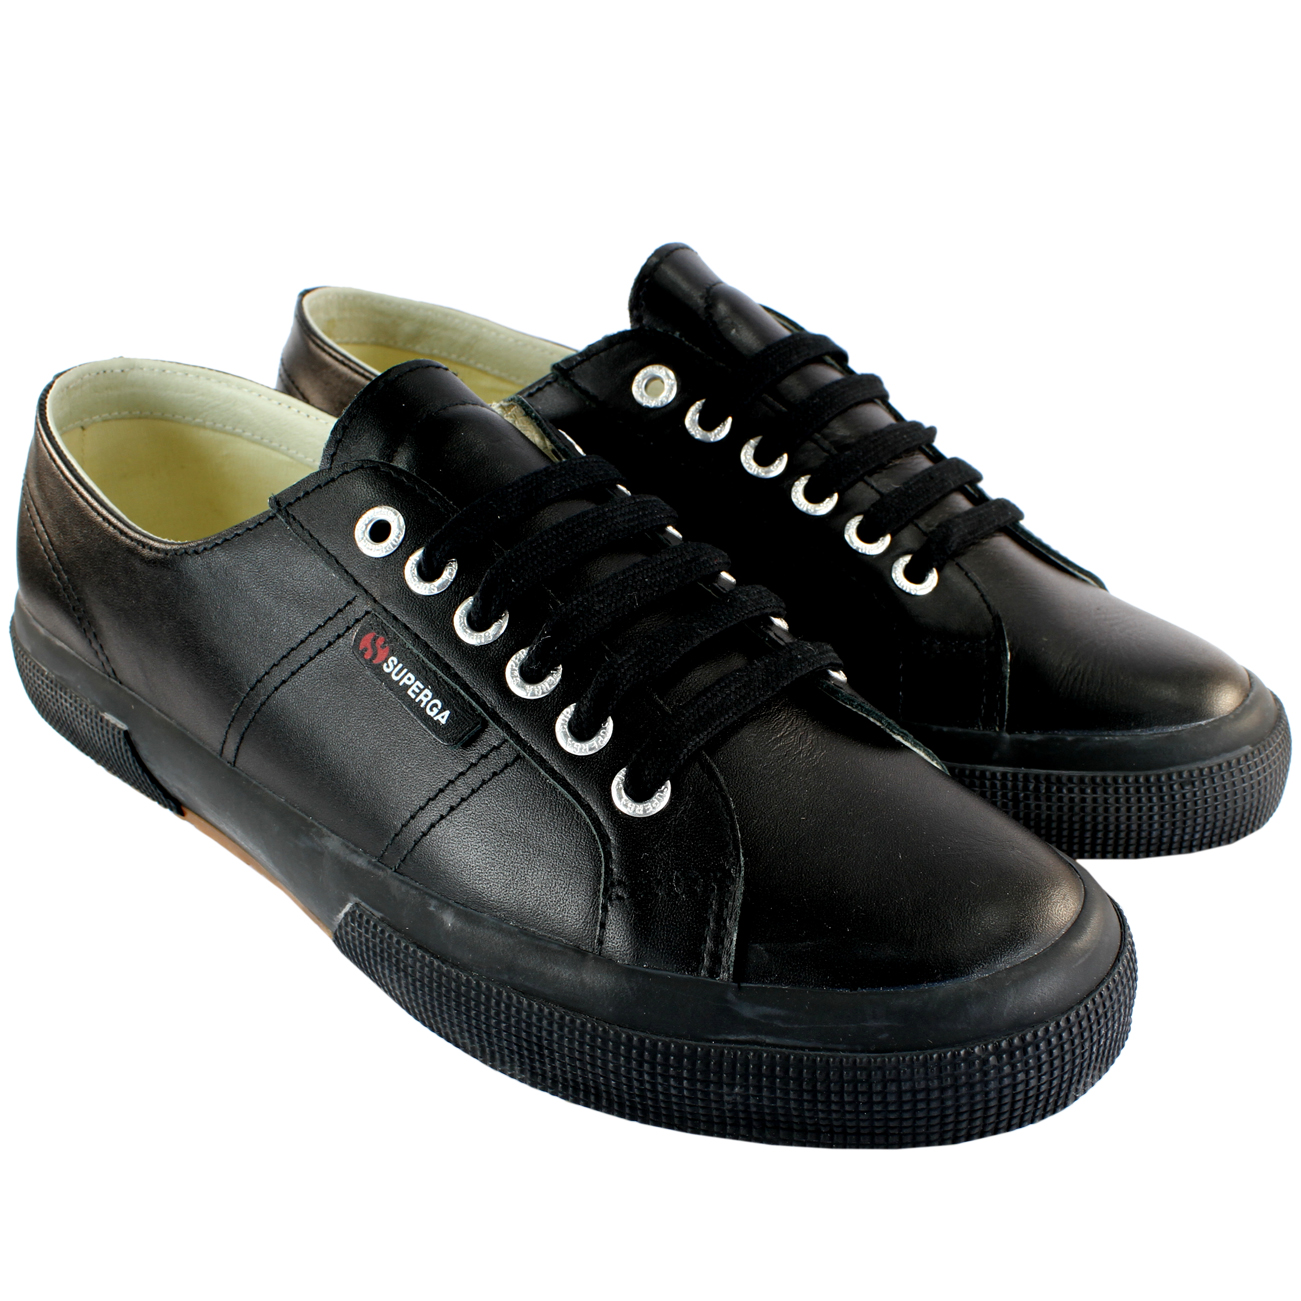 Superga 2750 Leather Trainers